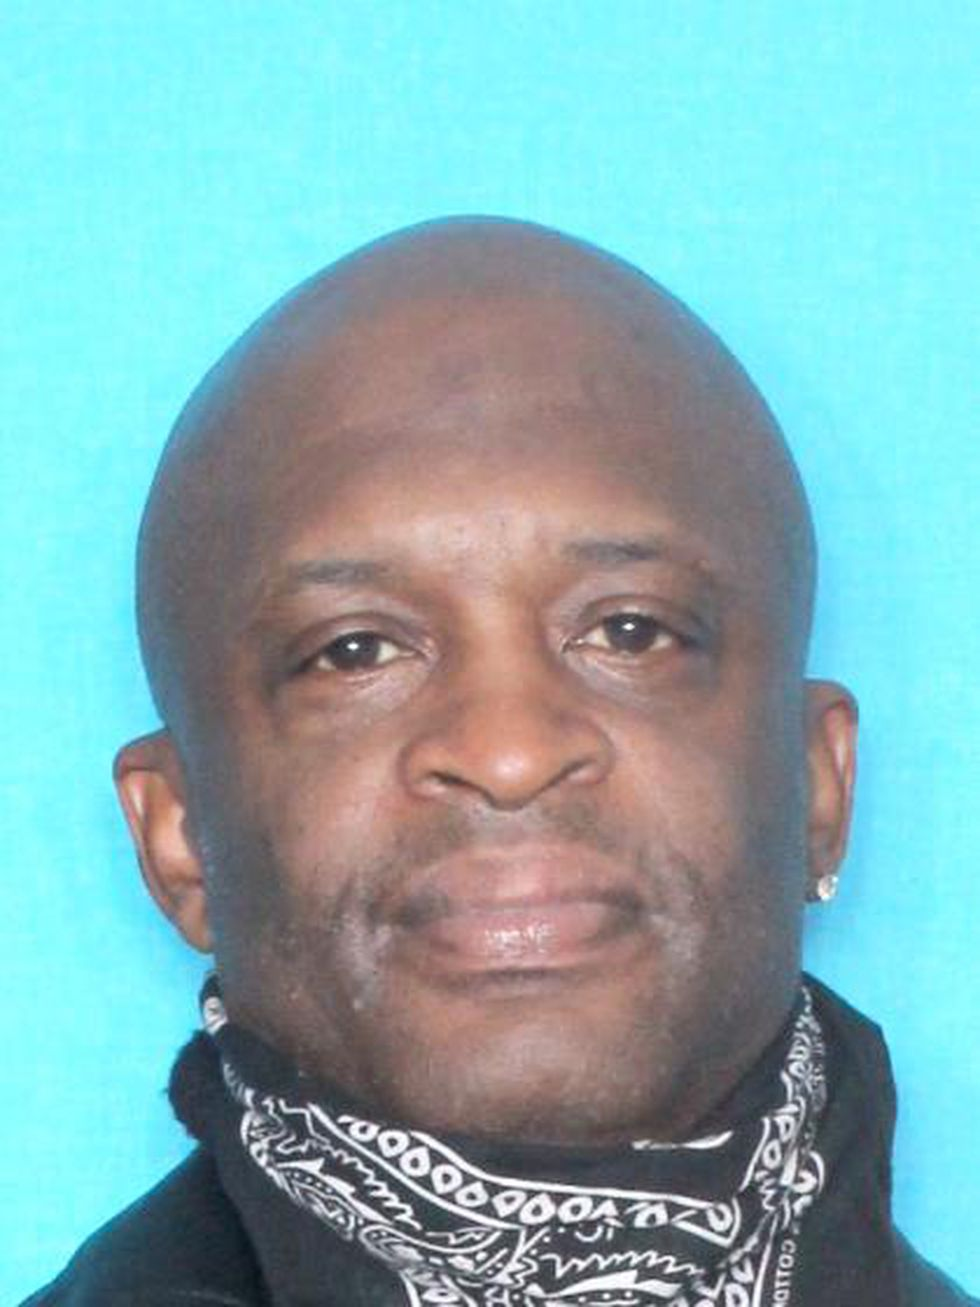 CRIME STOPPERS searching for man accused of home invasion and battery